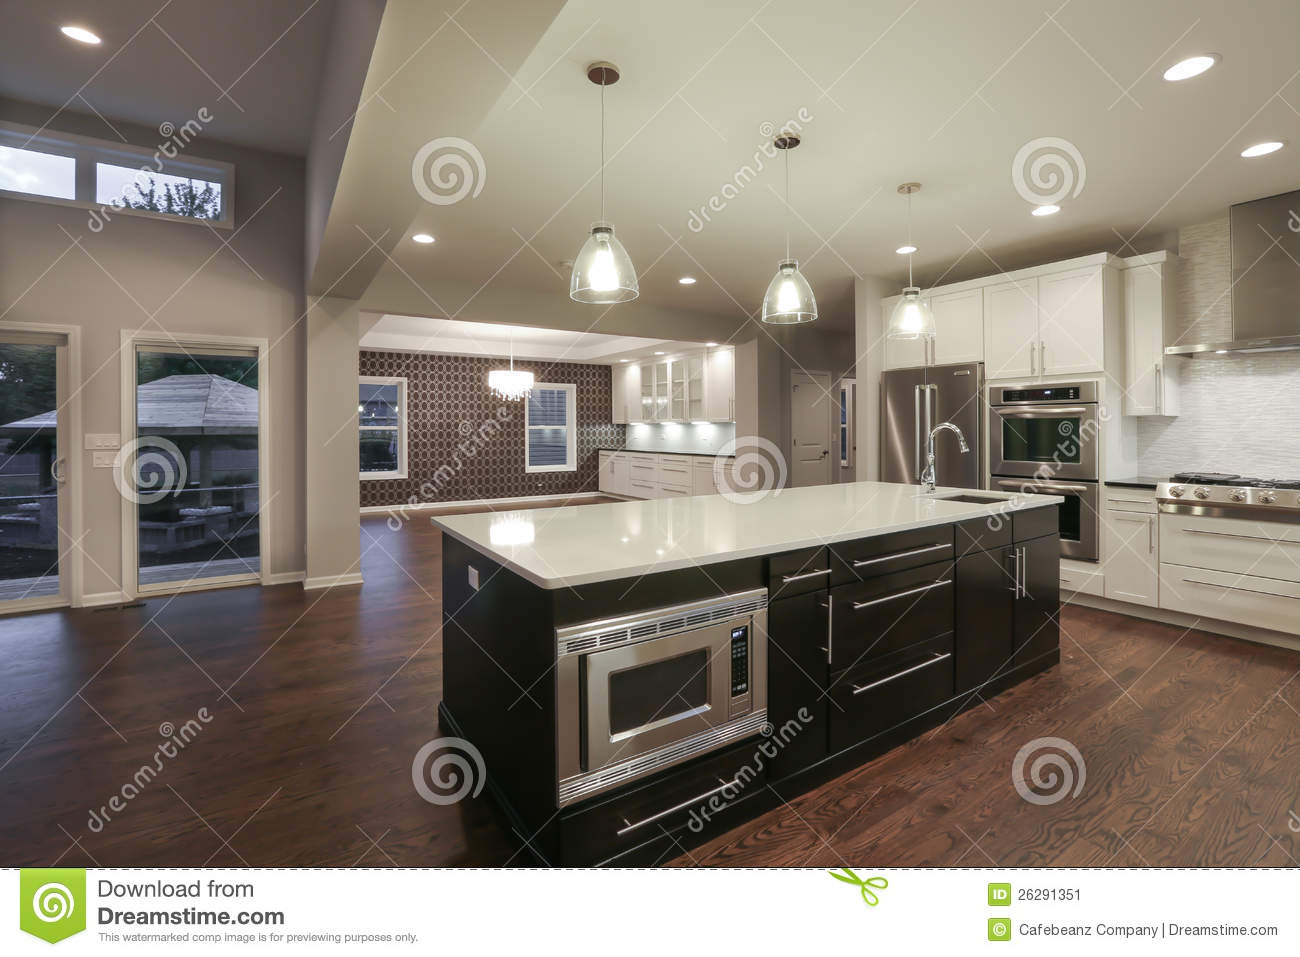 New home interior stock image image of home loft dark 26291351 - House interior images ...